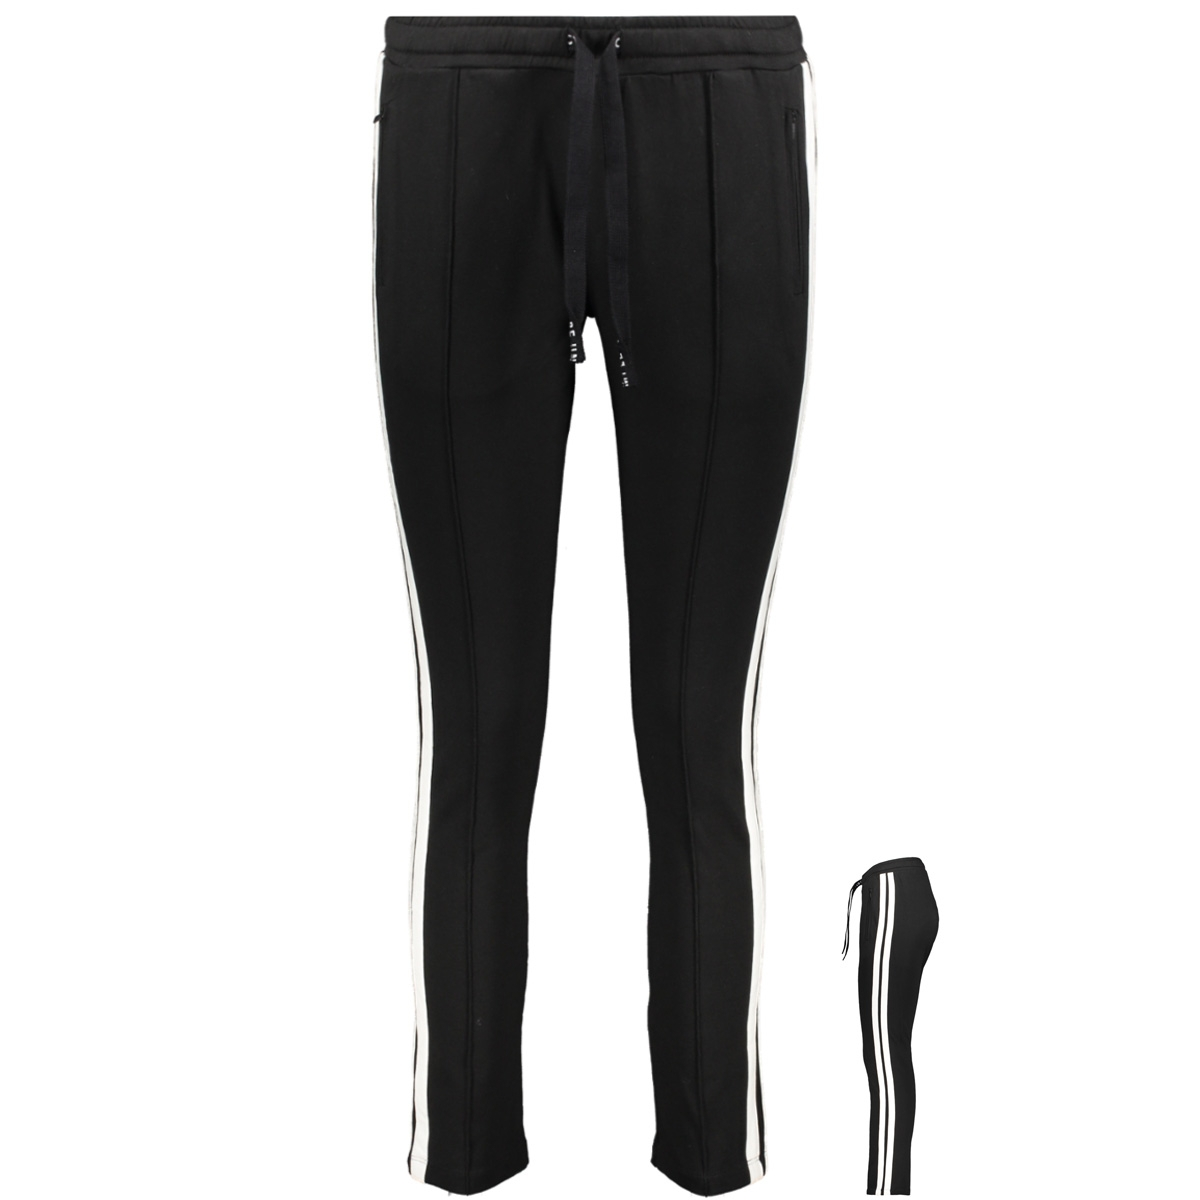 200159101 10 days broek black